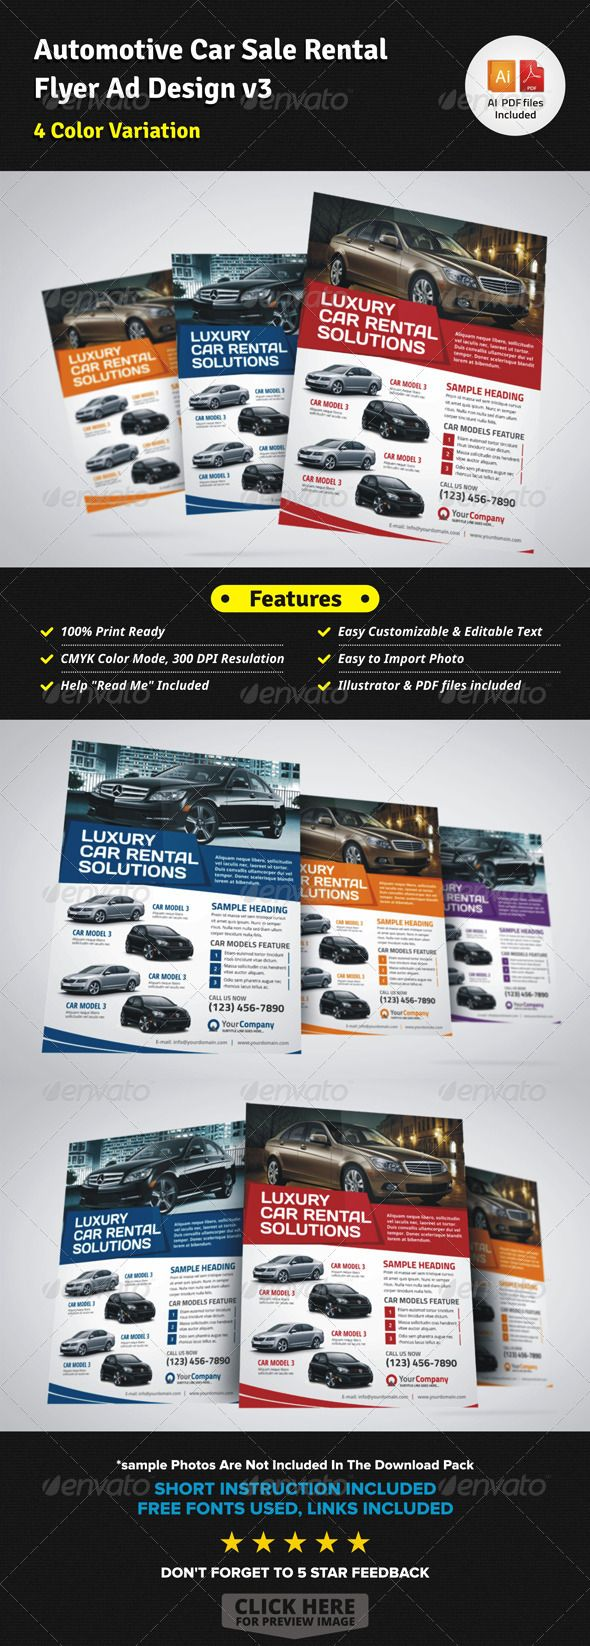 Automotive Car Sale Rental Flyer Ad V3  For Sale Ad Template